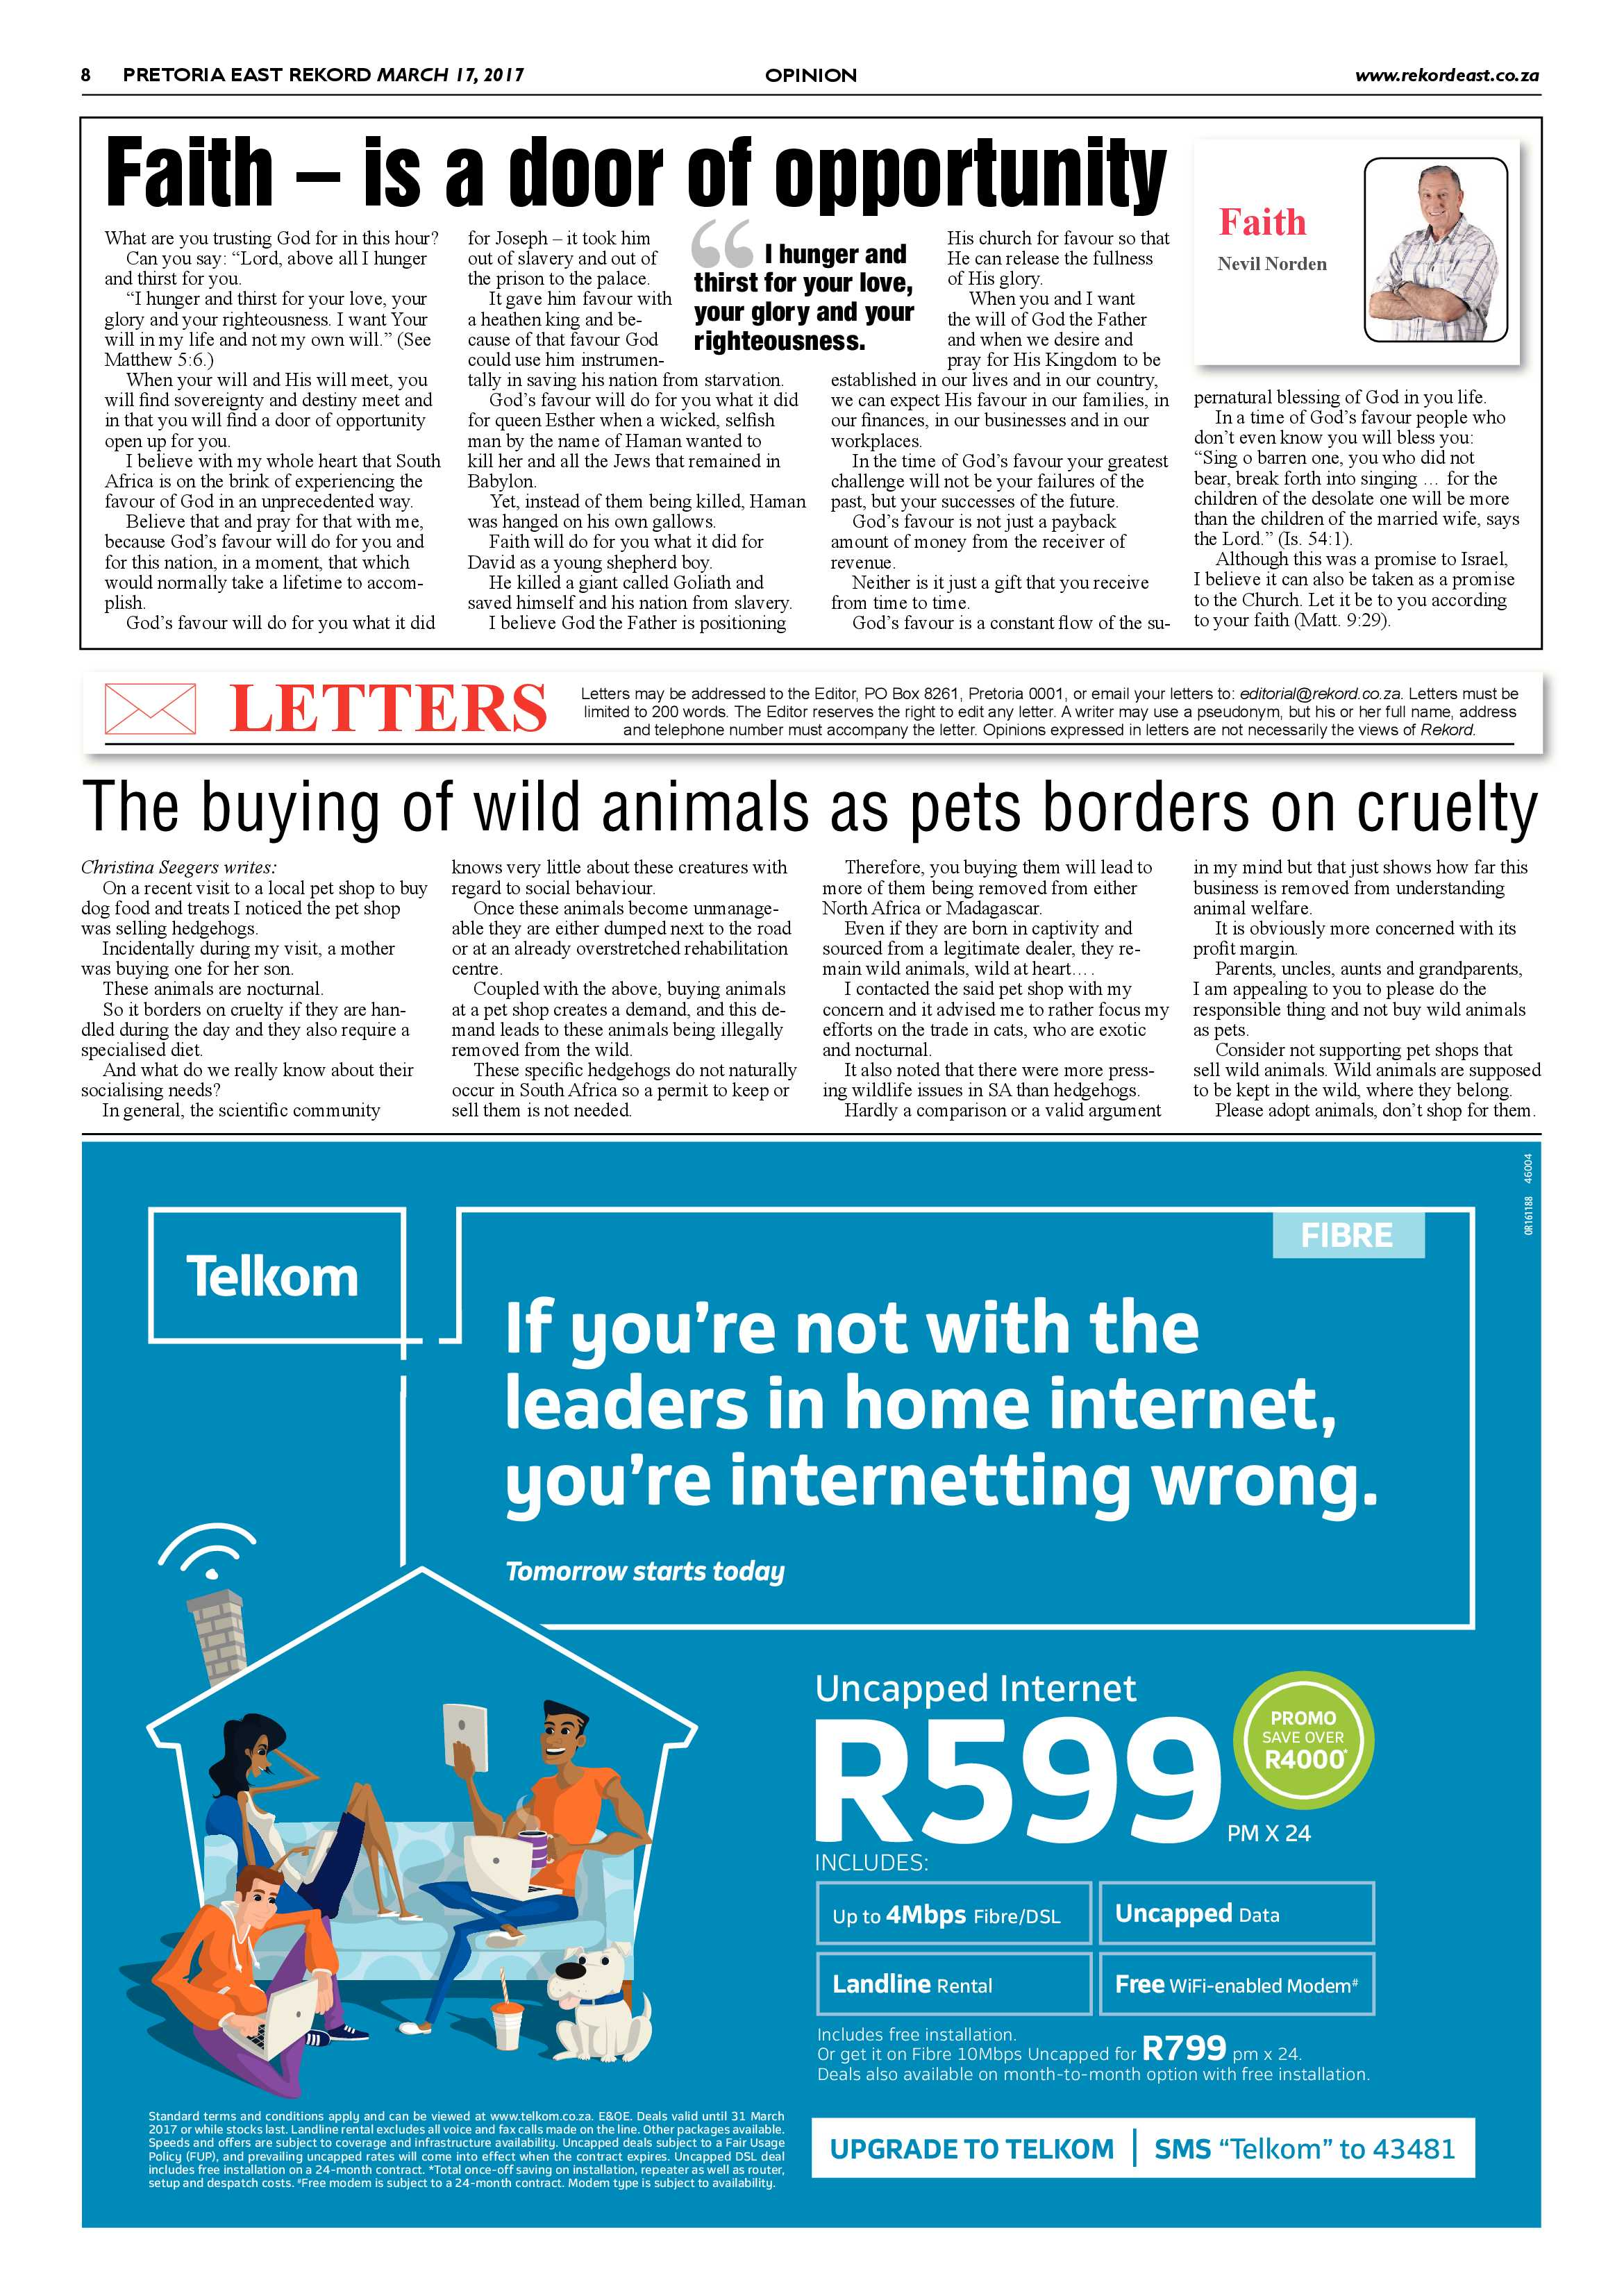 rekord-east-17-march-2017-epapers-page-8